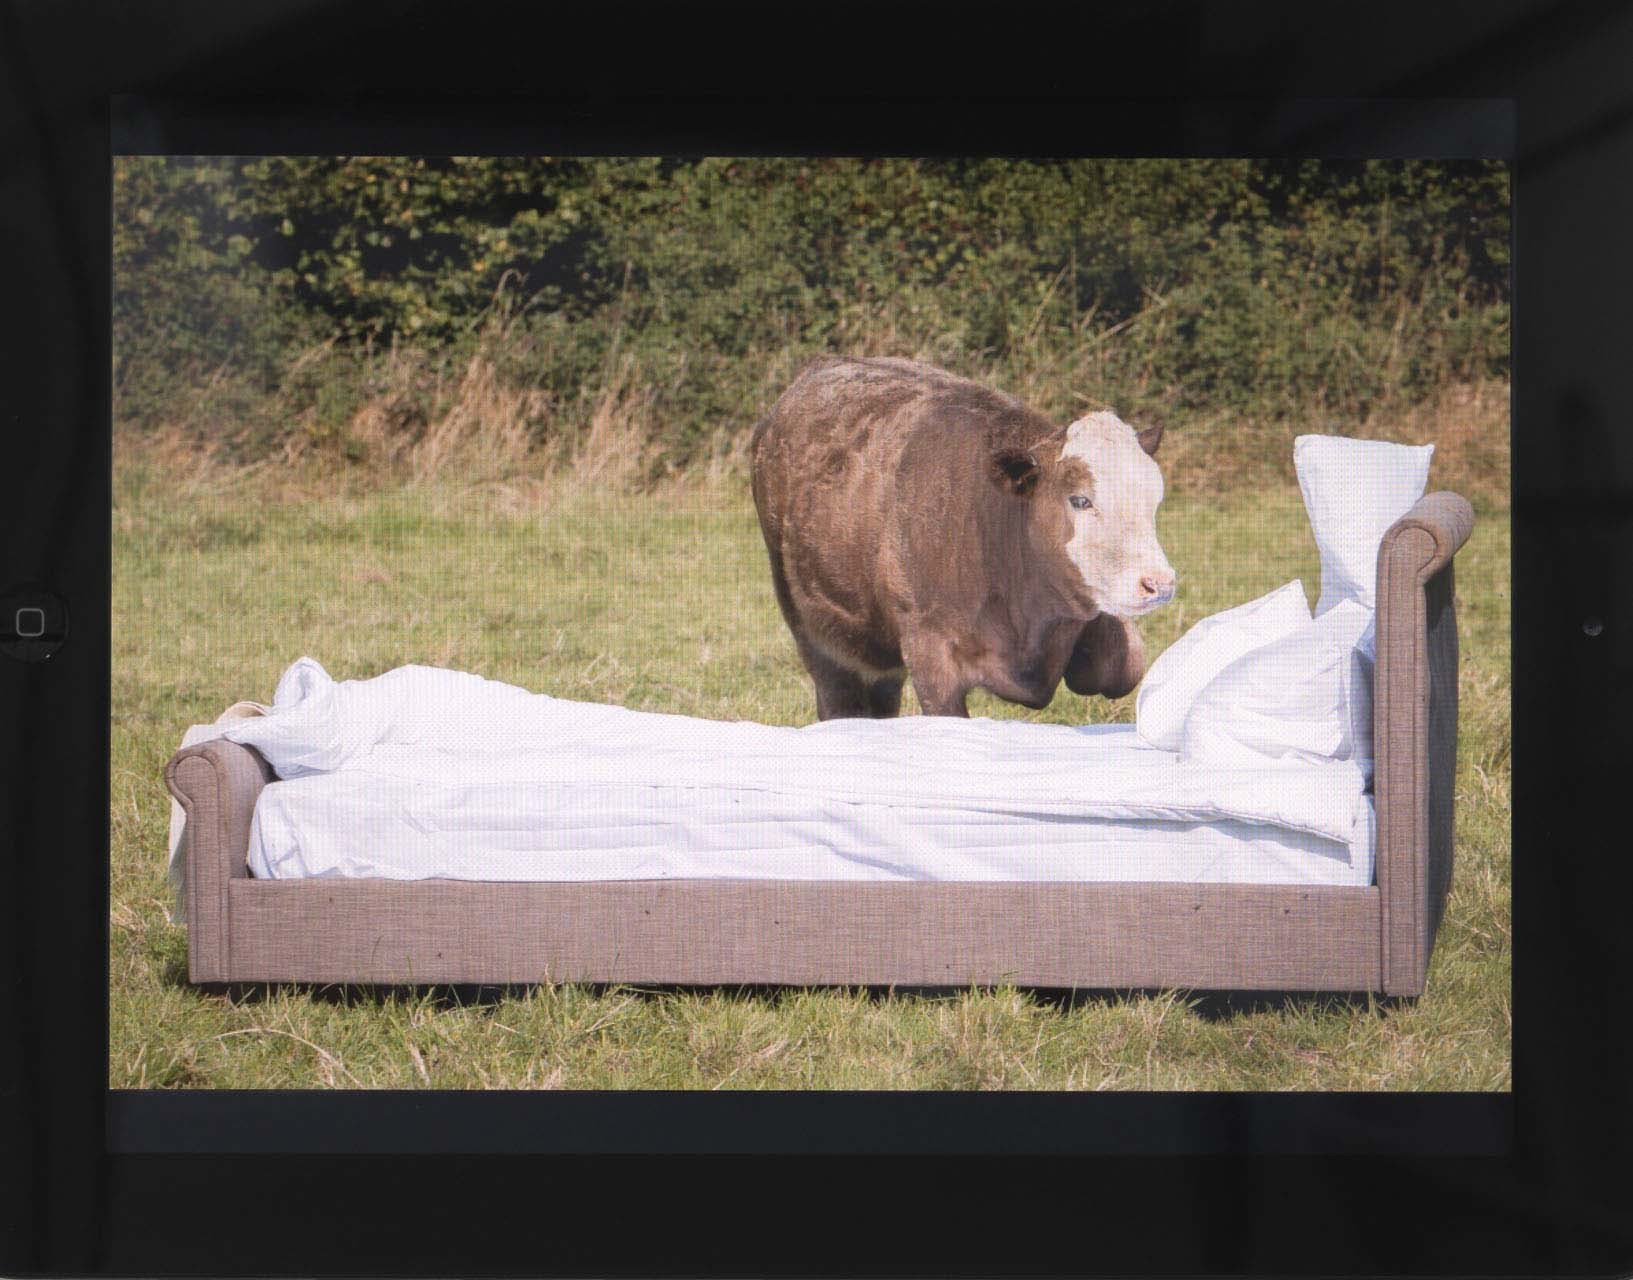 <p>Cow and\with bed</p>